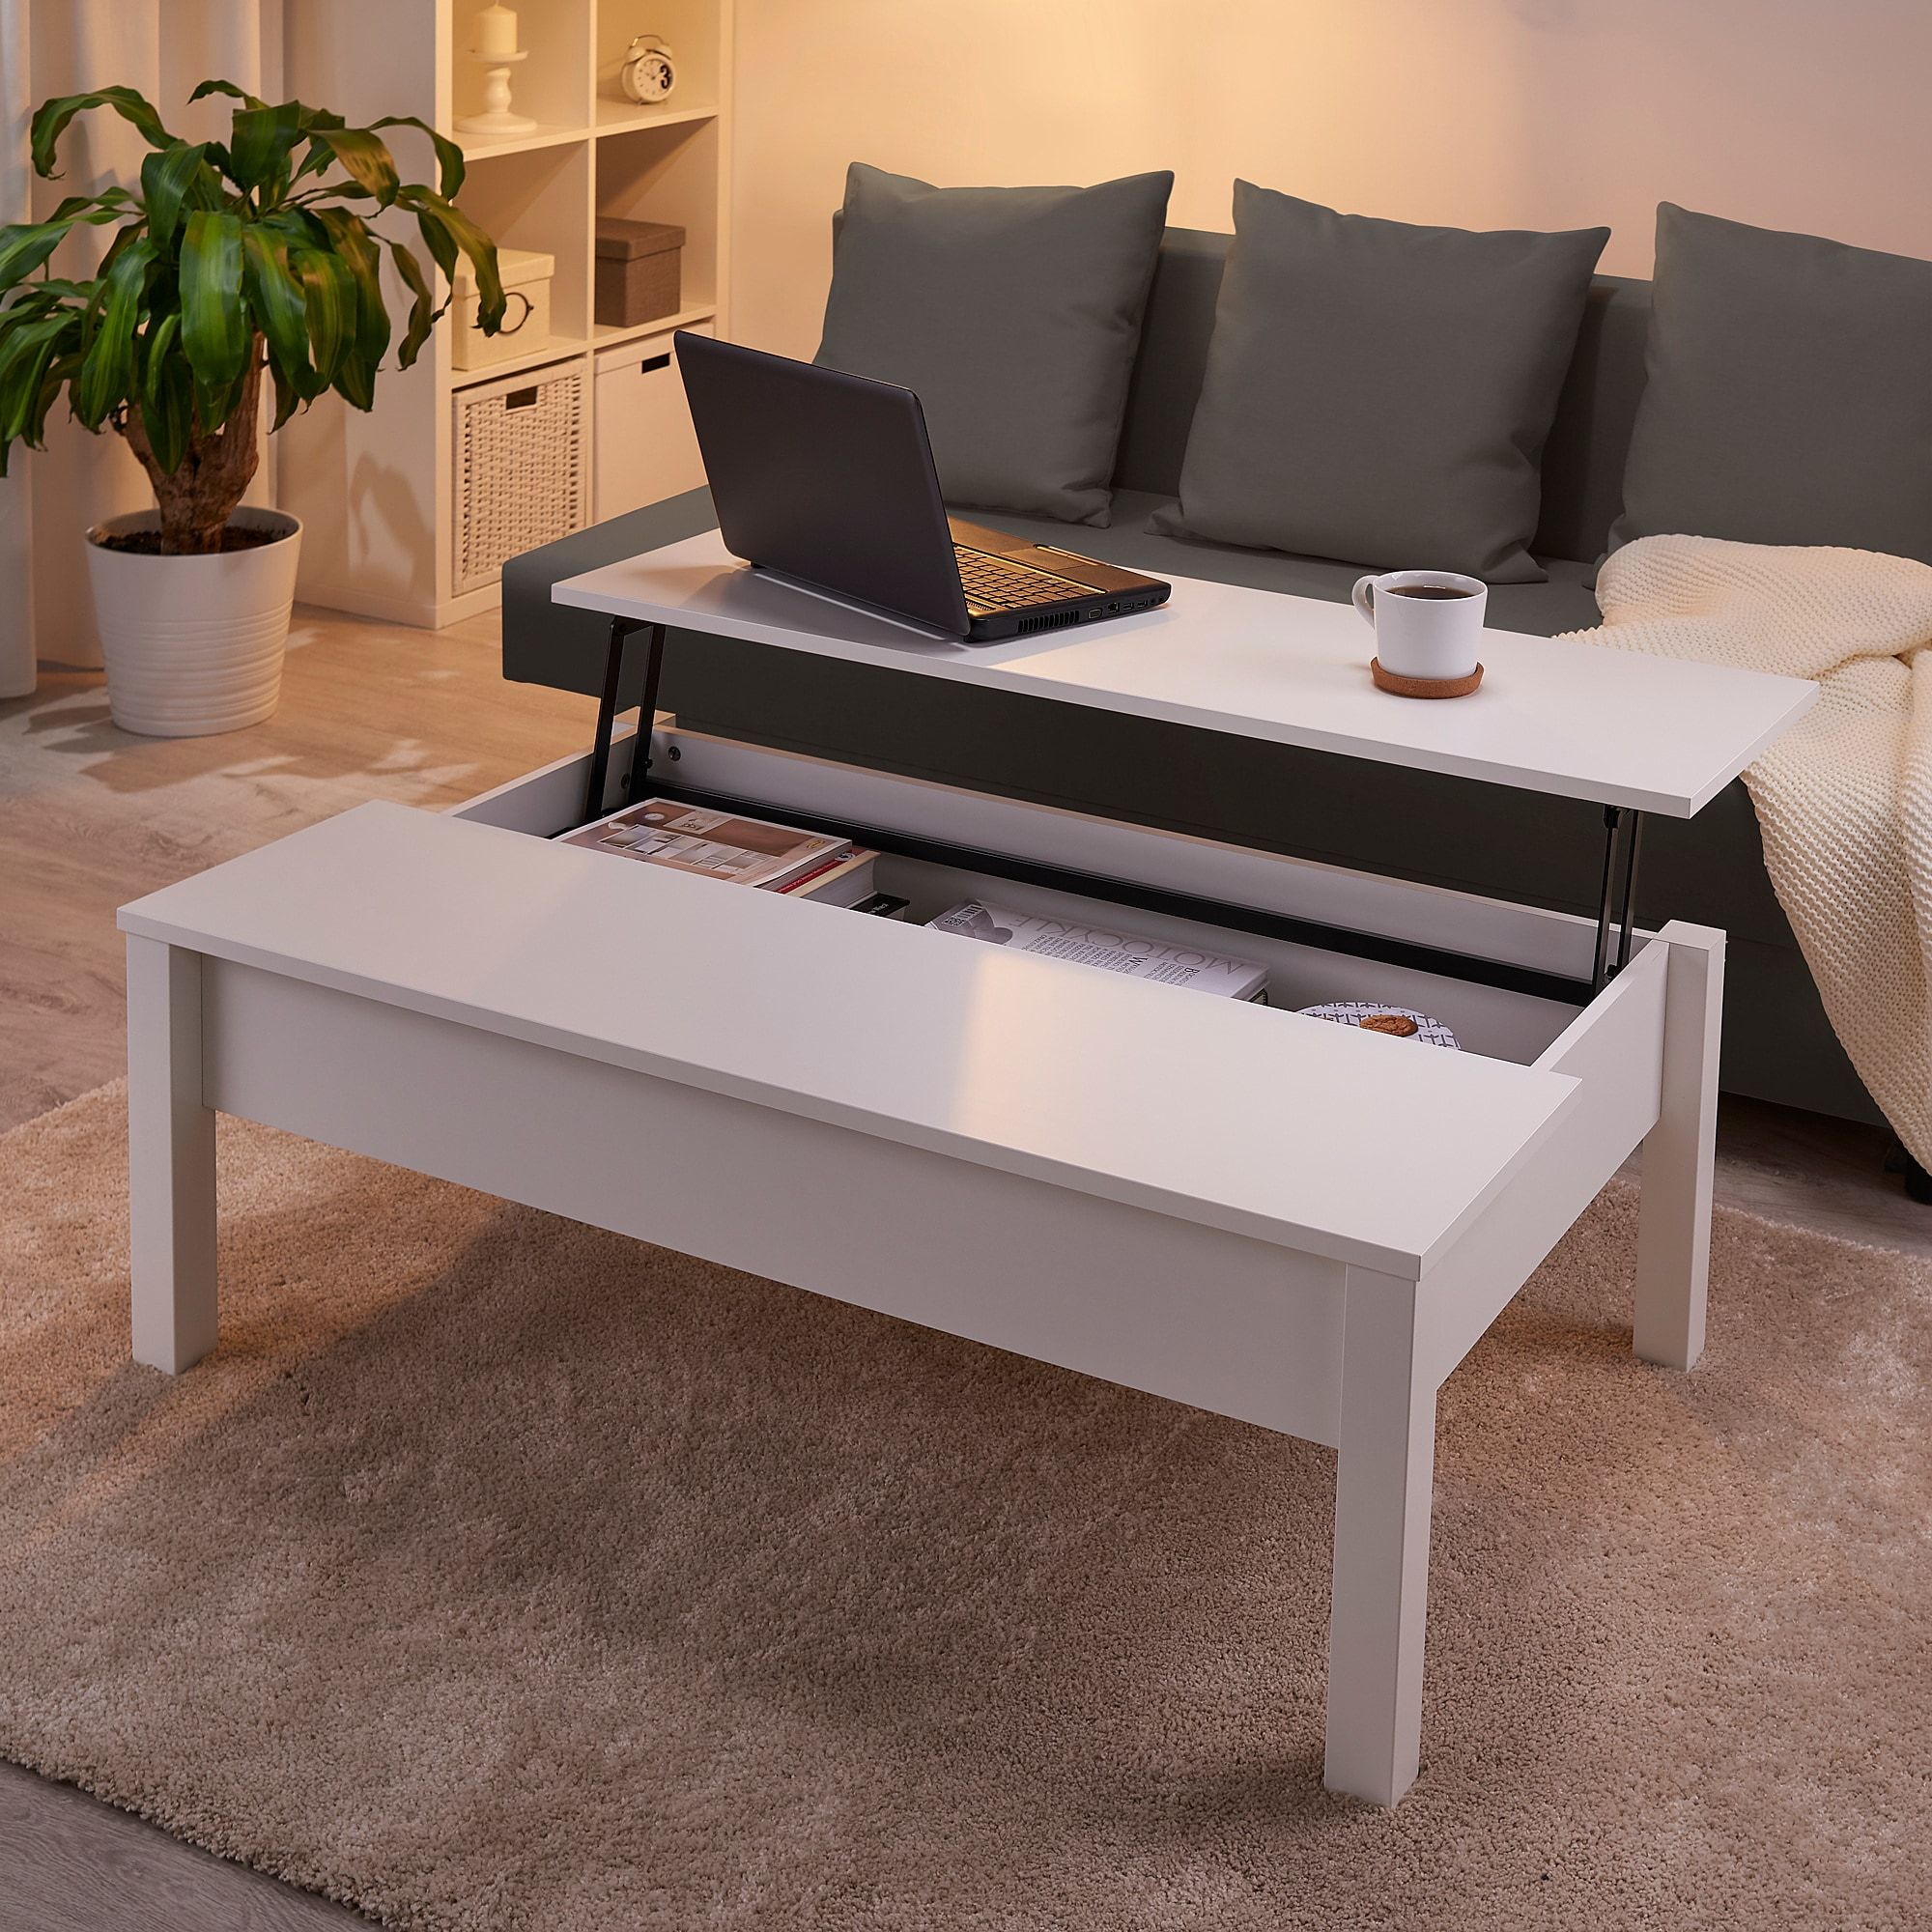 Astounding Ikea Trulstorp White Coffee Table In 2019 Small Coffee Alphanode Cool Chair Designs And Ideas Alphanodeonline